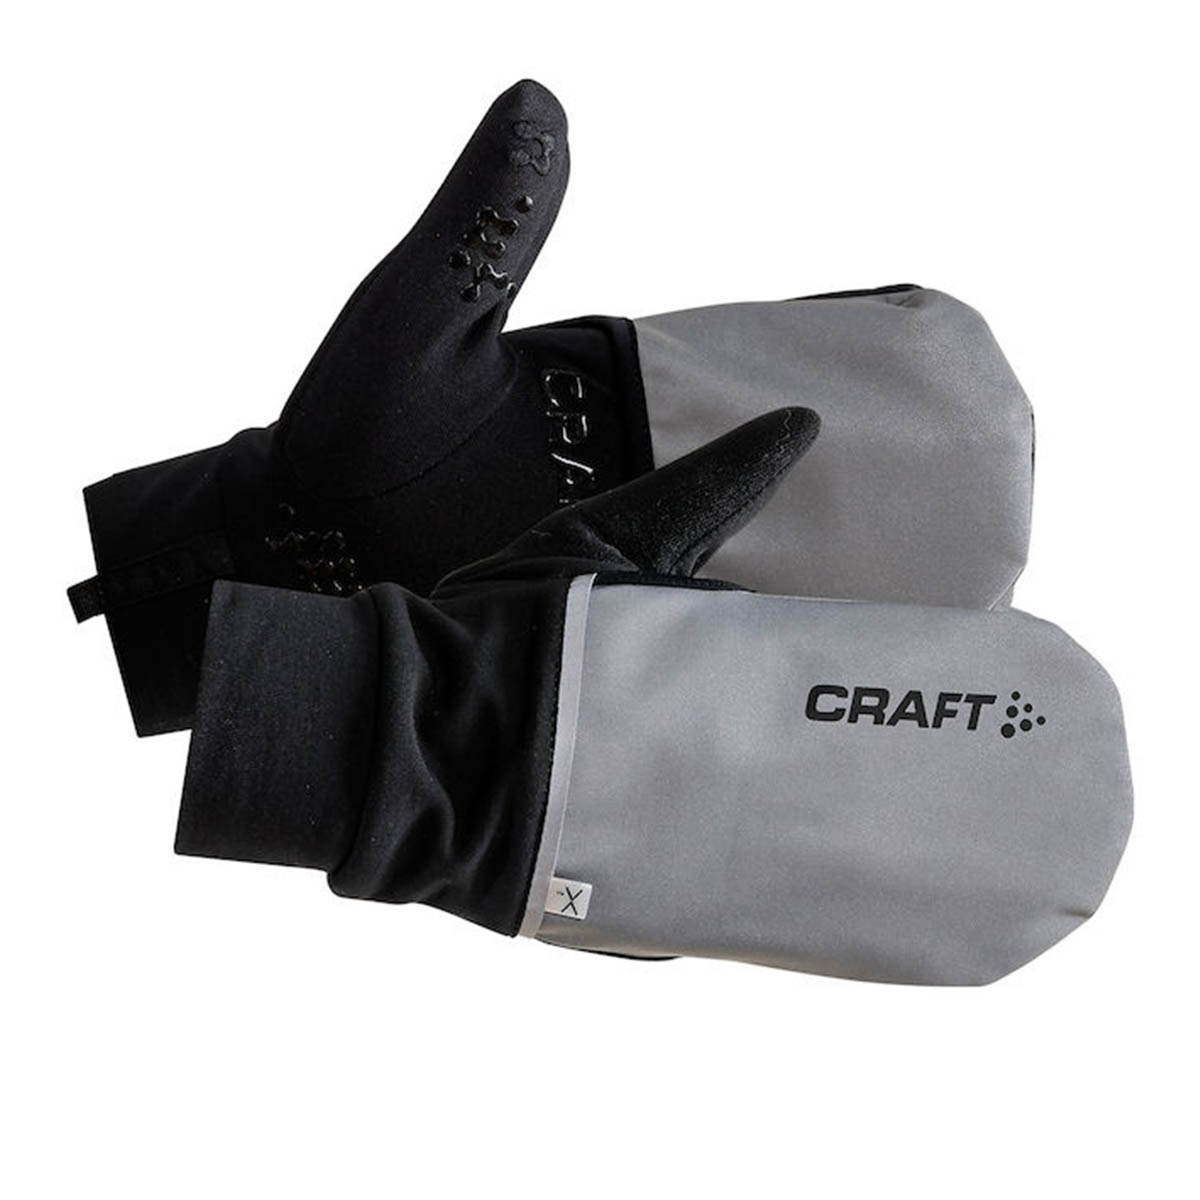 Craft-hanskat